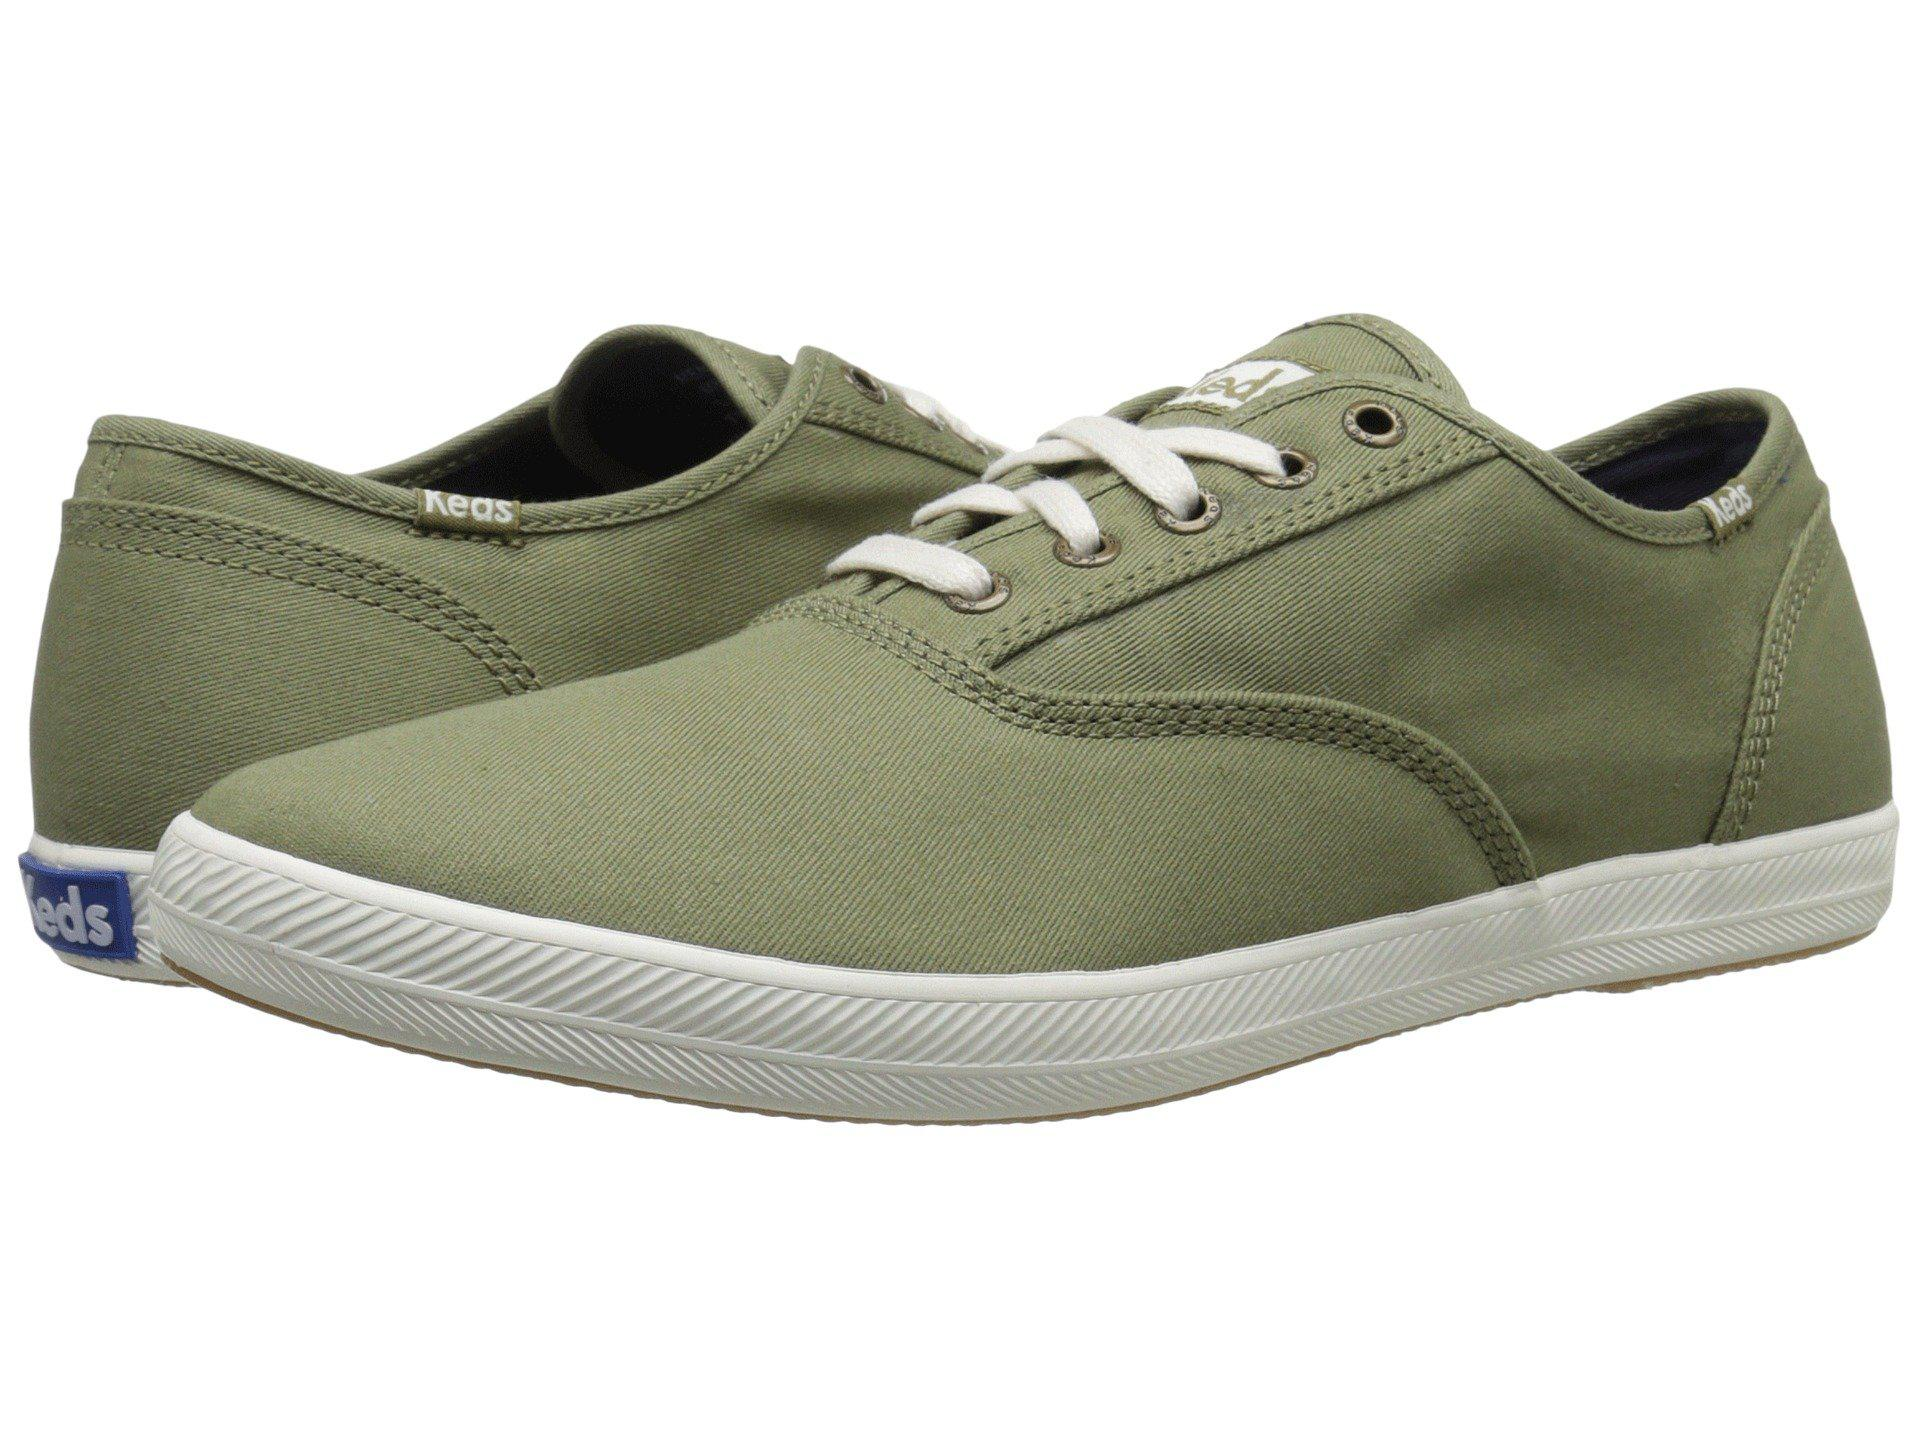 235f2a3128 Keds Champion Solid Army Twill Sneaker in Green for Men - Lyst